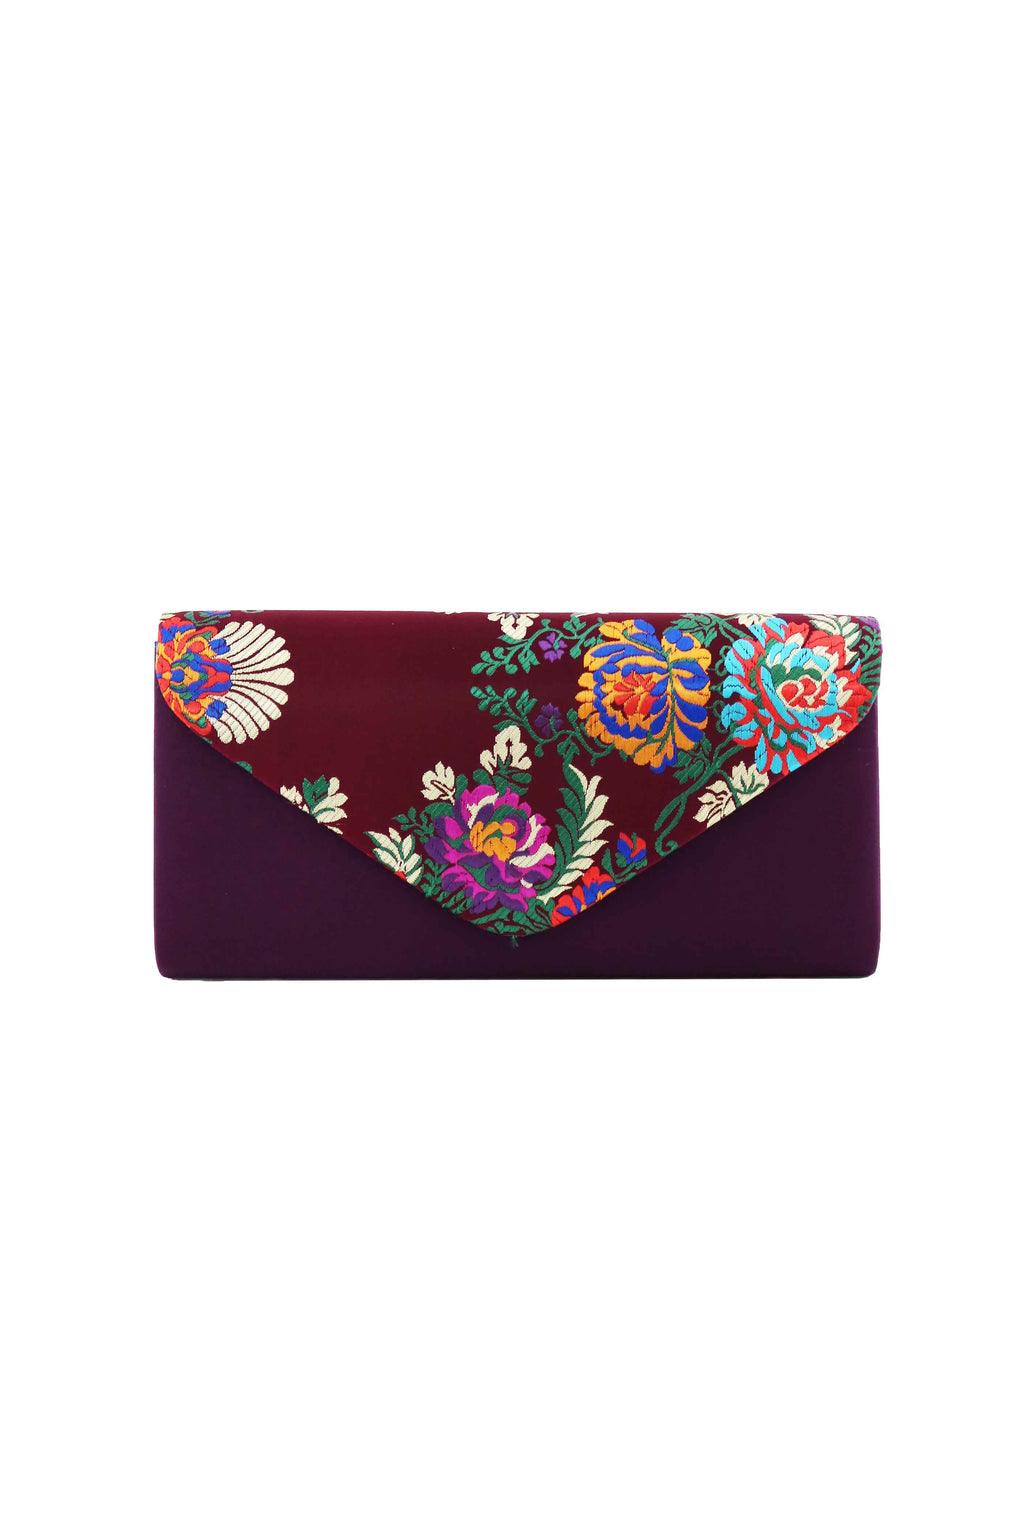 SCARLET PURPLE CLUTCH BAG